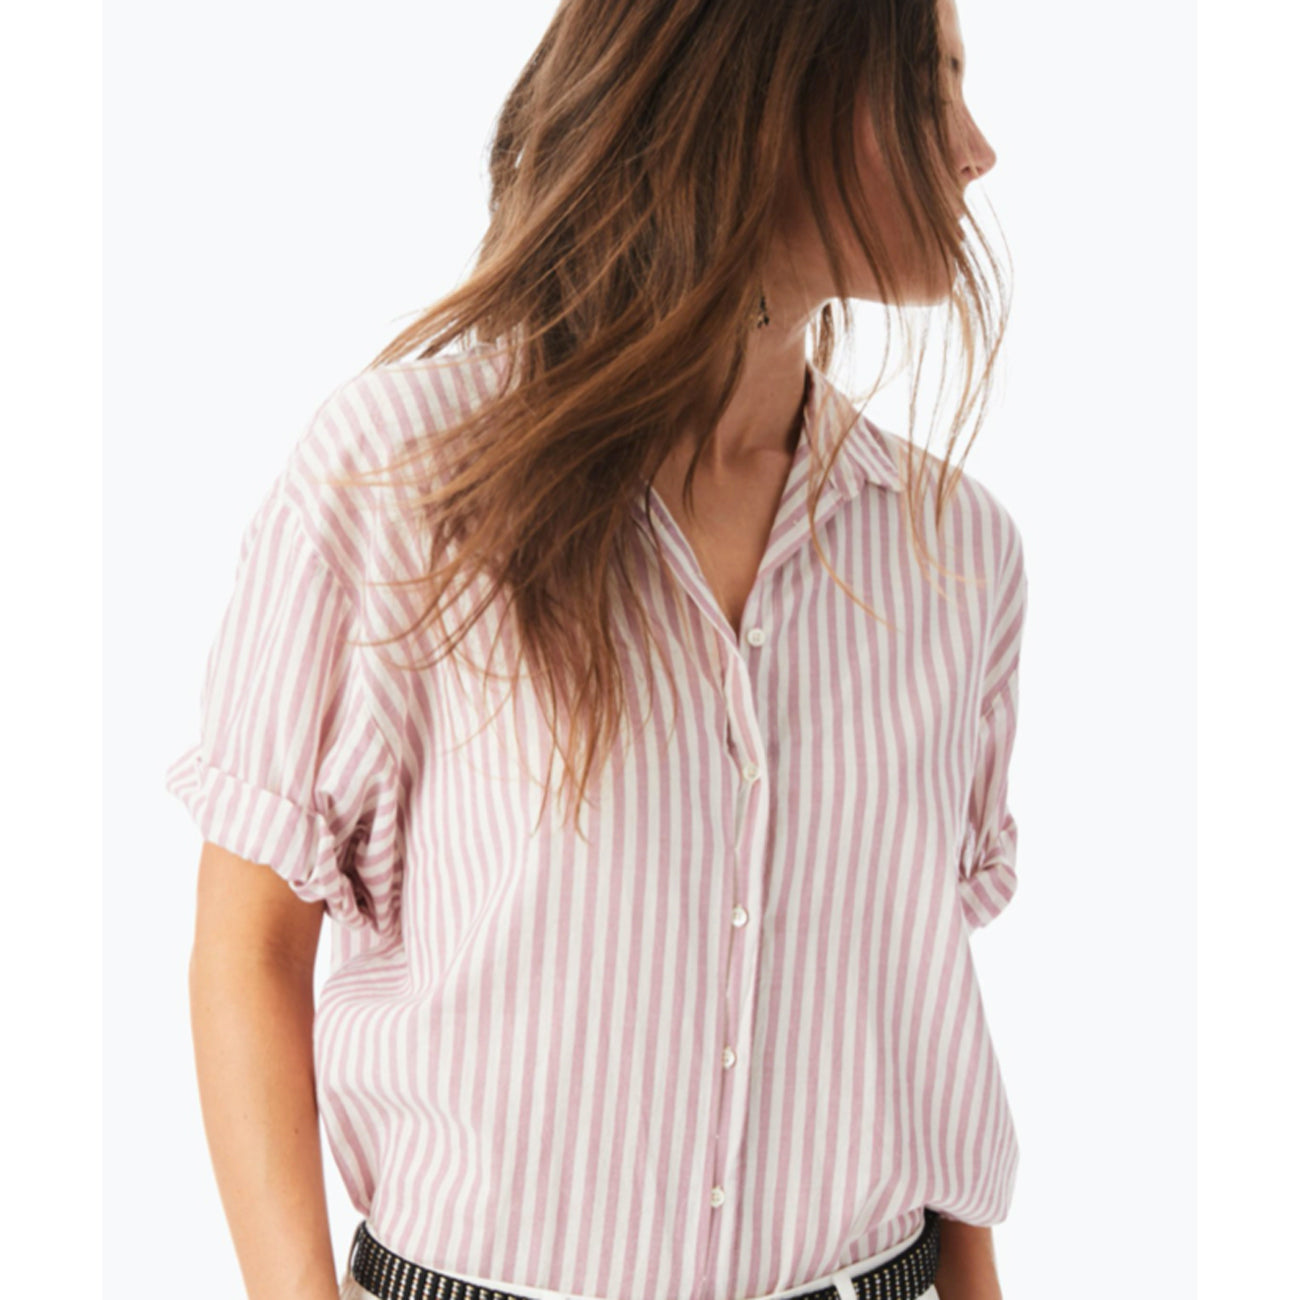 channing shirt in mesa rose